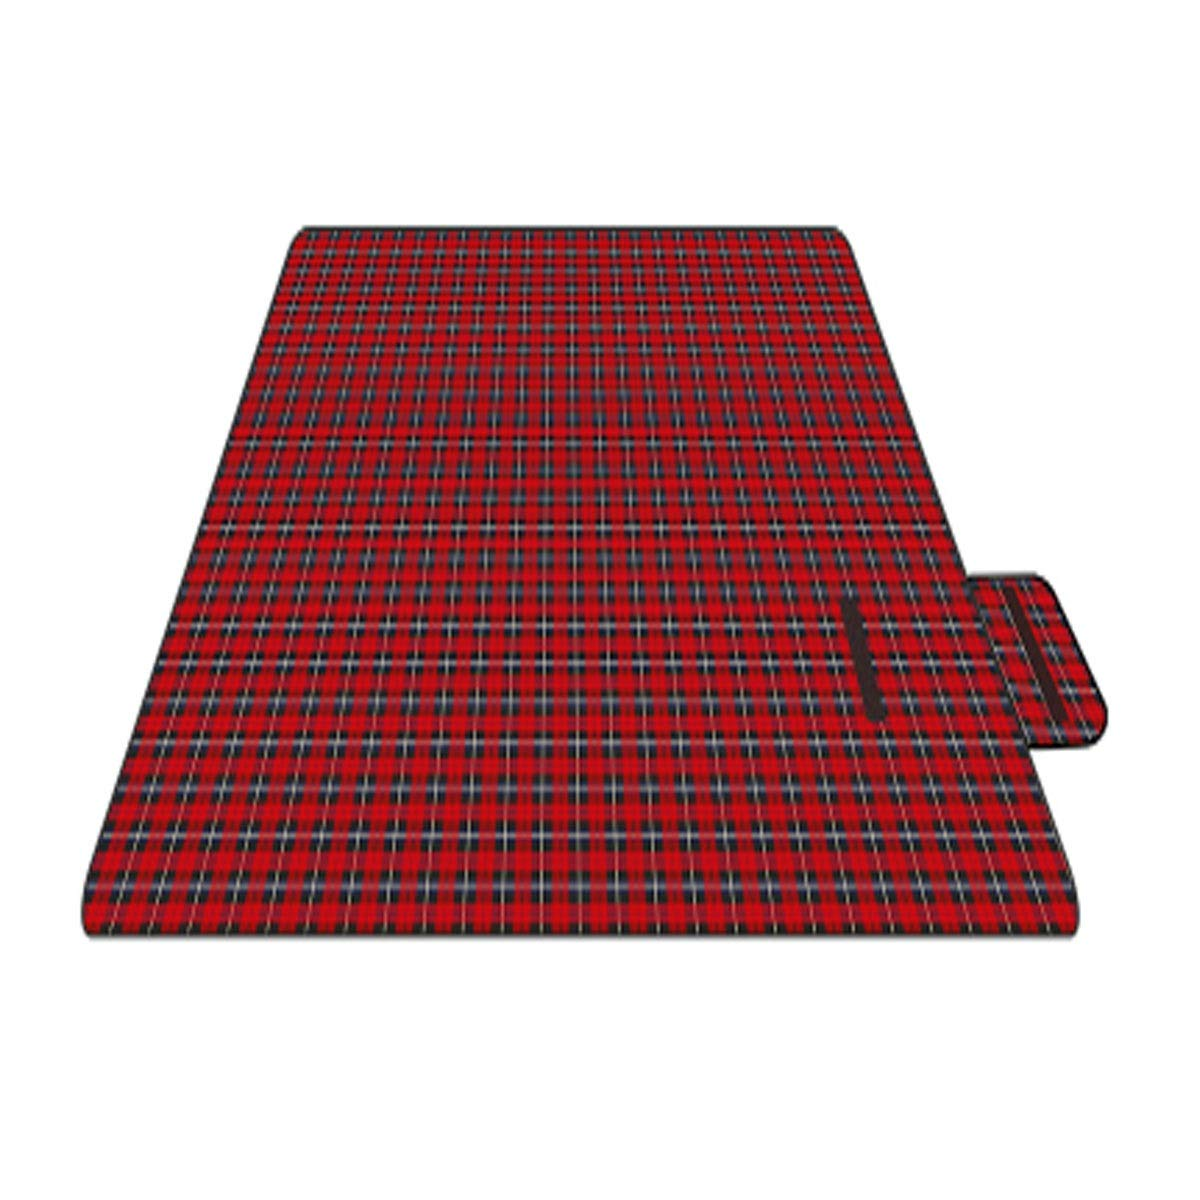 Jingfeng Camping mat, Outdoor Waterproof Beach mat, Picnic mat, Oxford Fabric, 200  150 cm, Suitable for Outdoor Travel (Send Storage Bag) Beautiful (Size   200  150cm, Style   A003)